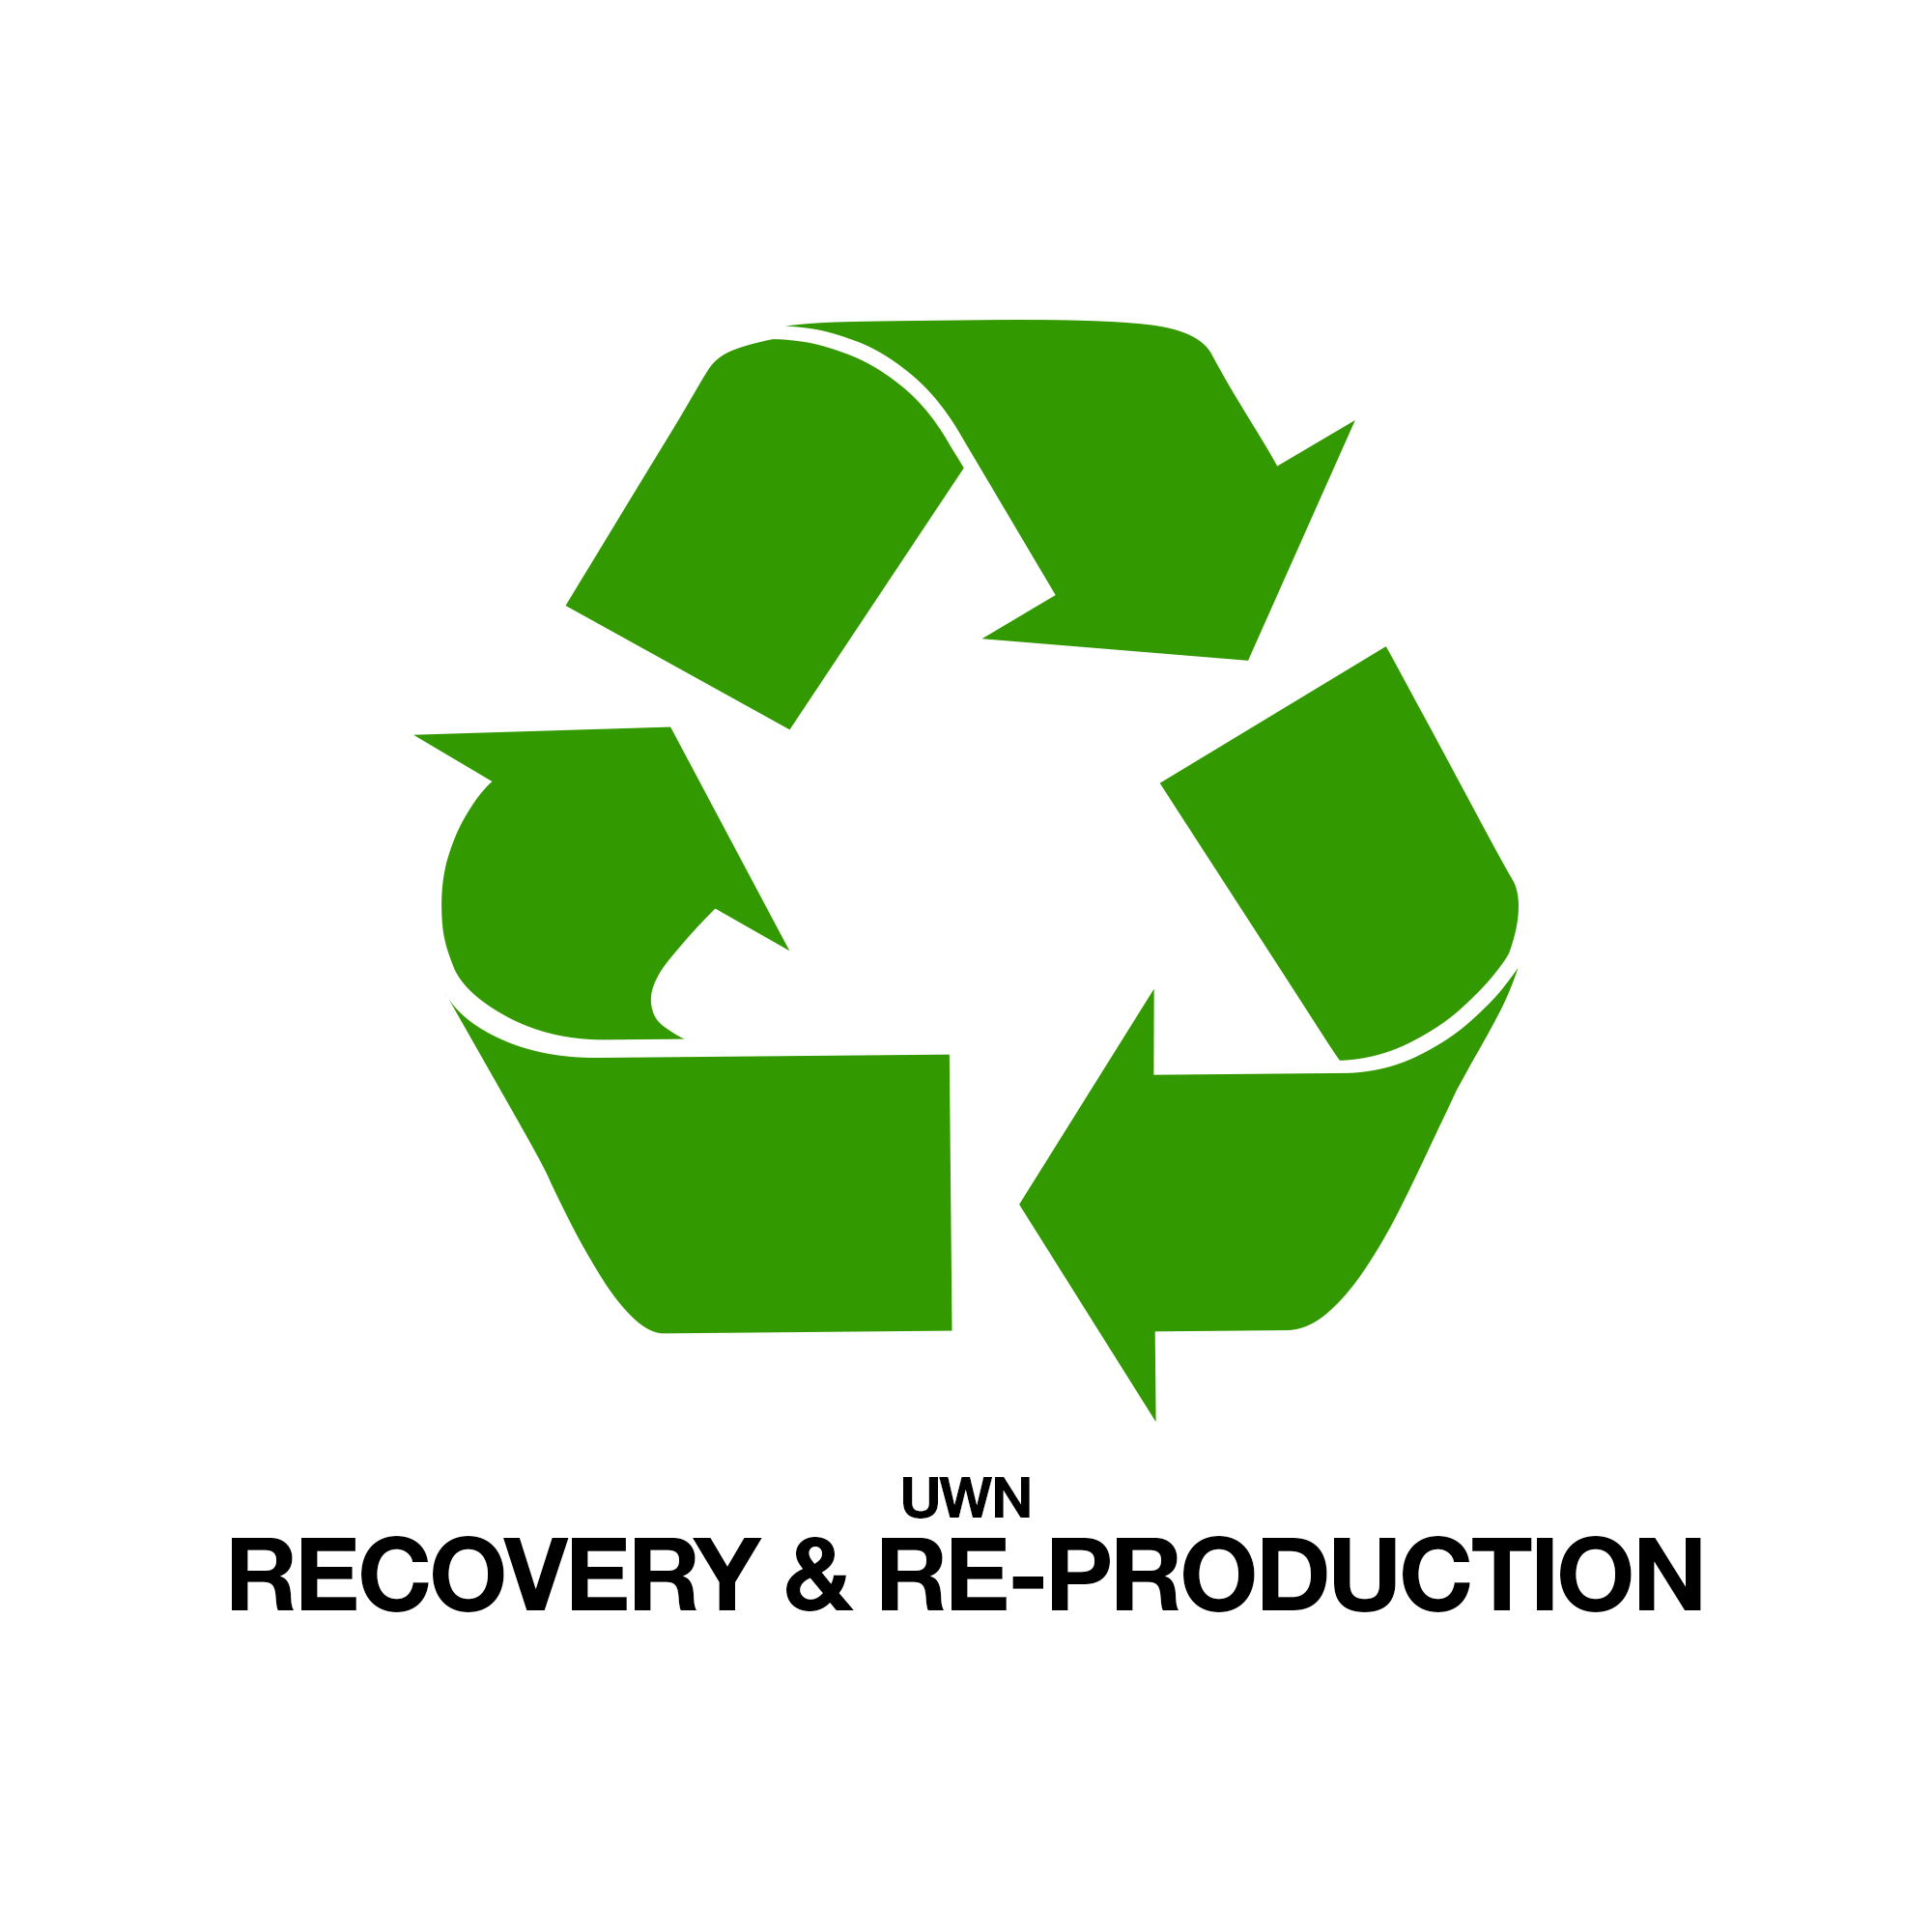 UWN Plastic Recovery & Re-Production